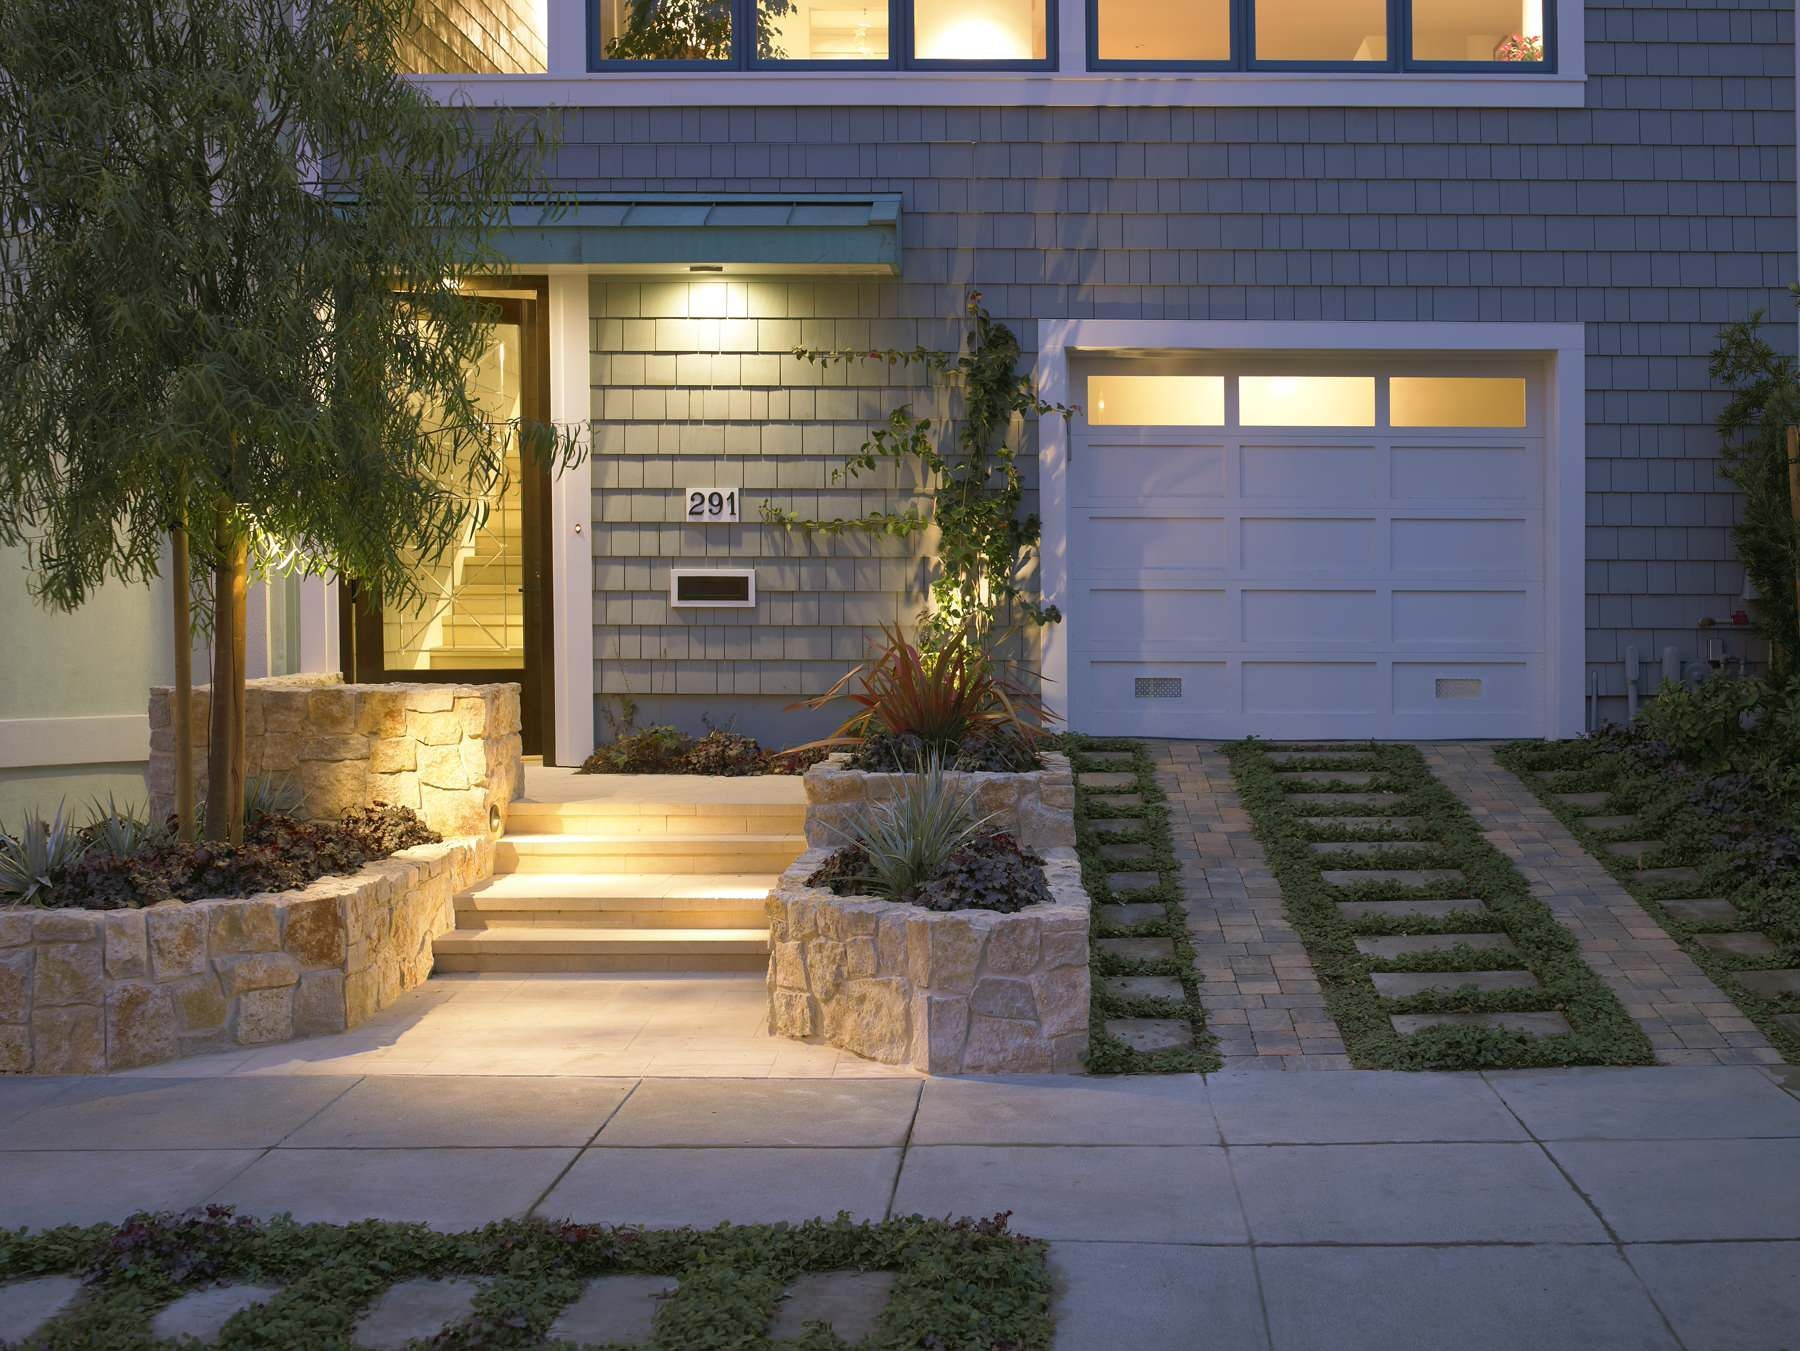 Beautify The Landscape And Your Home With Creative Driveway Ideas:  Traditional Exterior With Pavers And Slate Driveway Plus Greenery For  Driveway Ideas Next ...